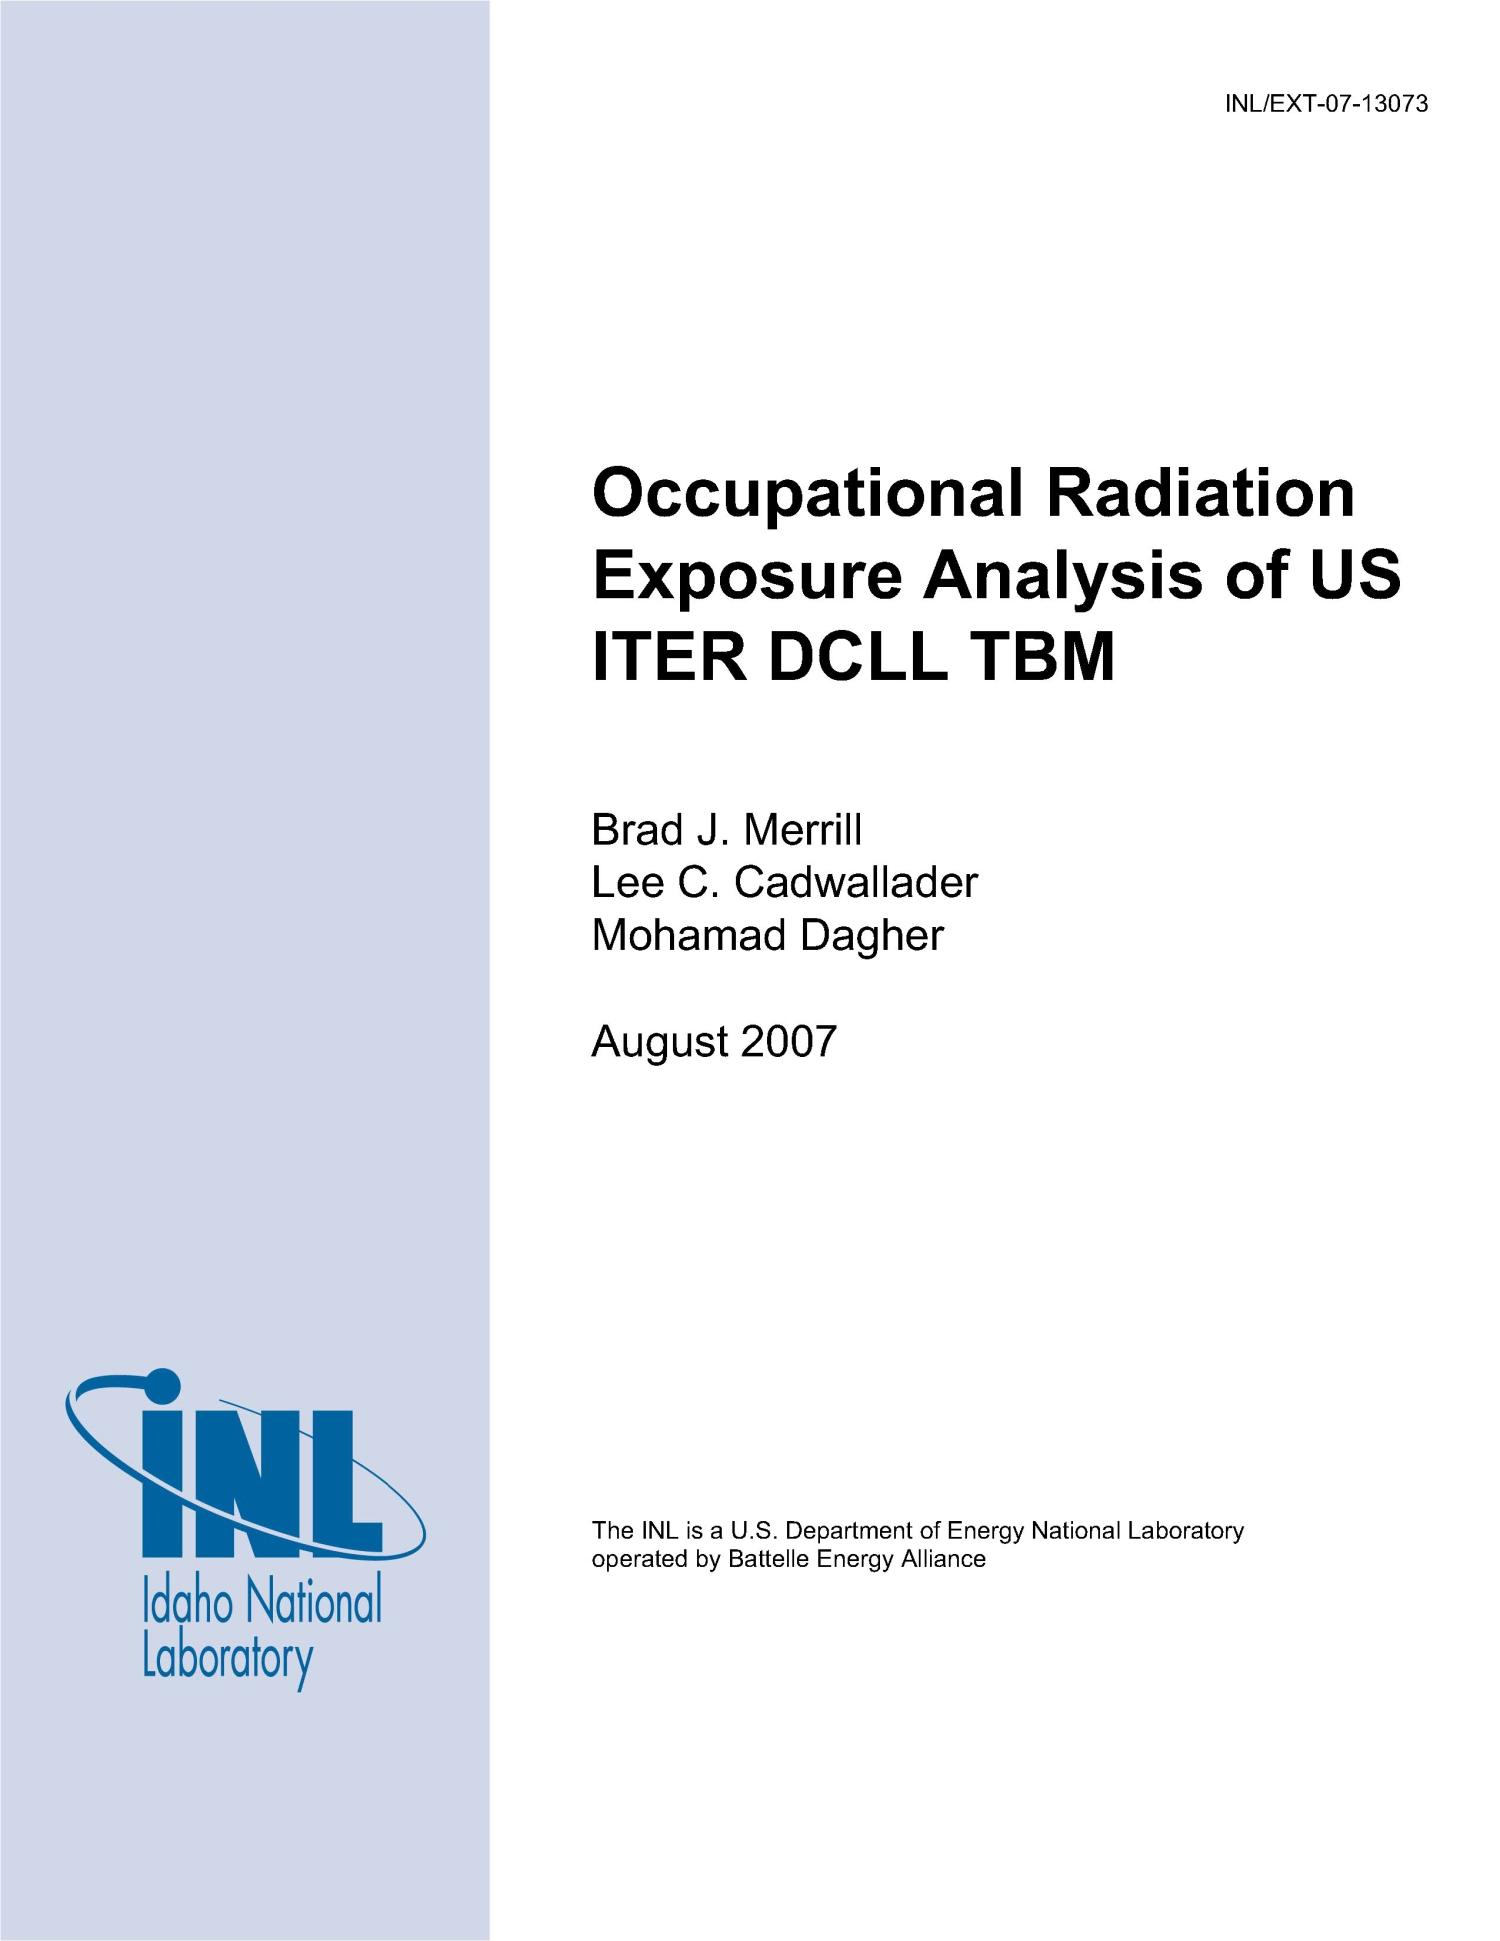 Occupational Radiation Exposure Analysis of US ITER DCLL TBM                                                                                                      [Sequence #]: 1 of 39